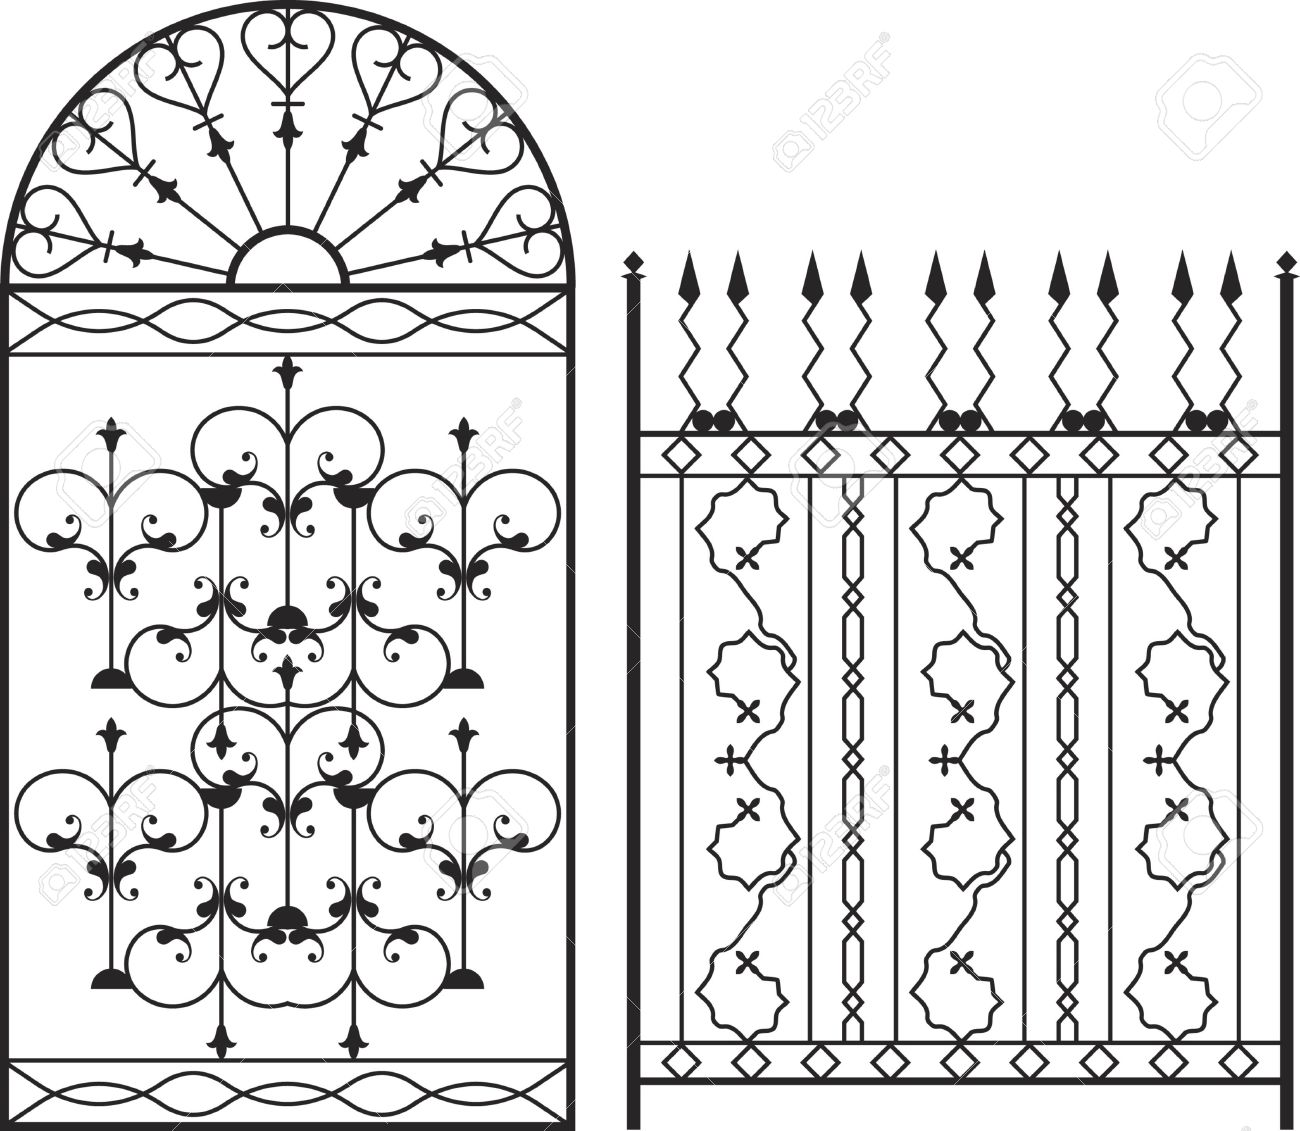 Wood Fence Drawing at GetDrawings.com | Free for personal use Wood ...